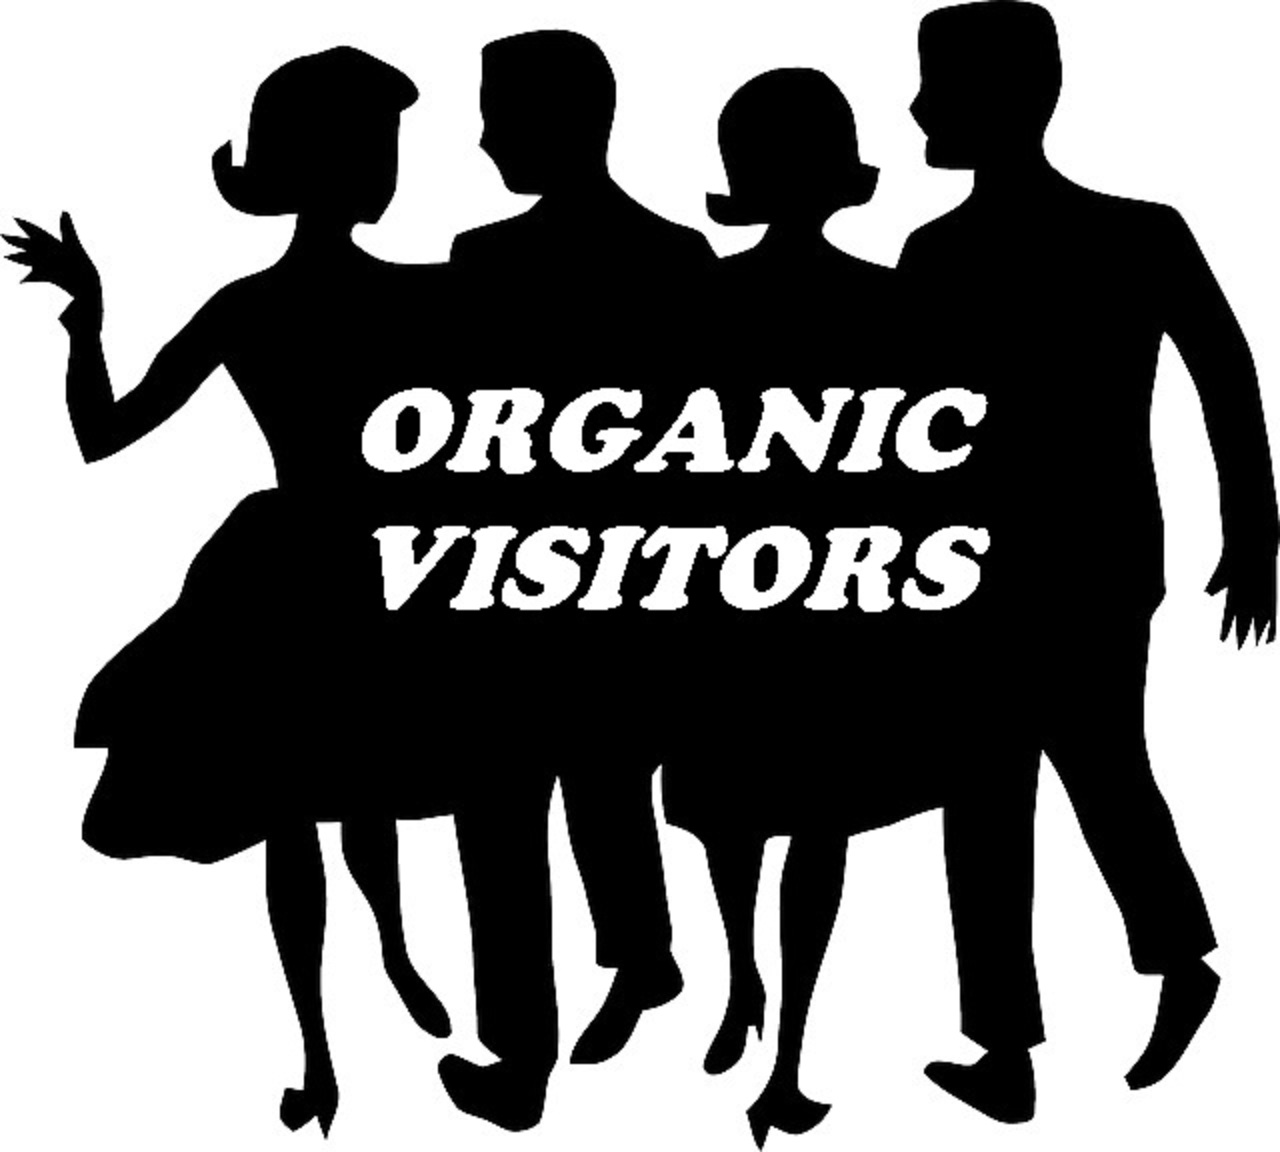 drive ORGANIC TRAFFIC to your Link  web  shop product